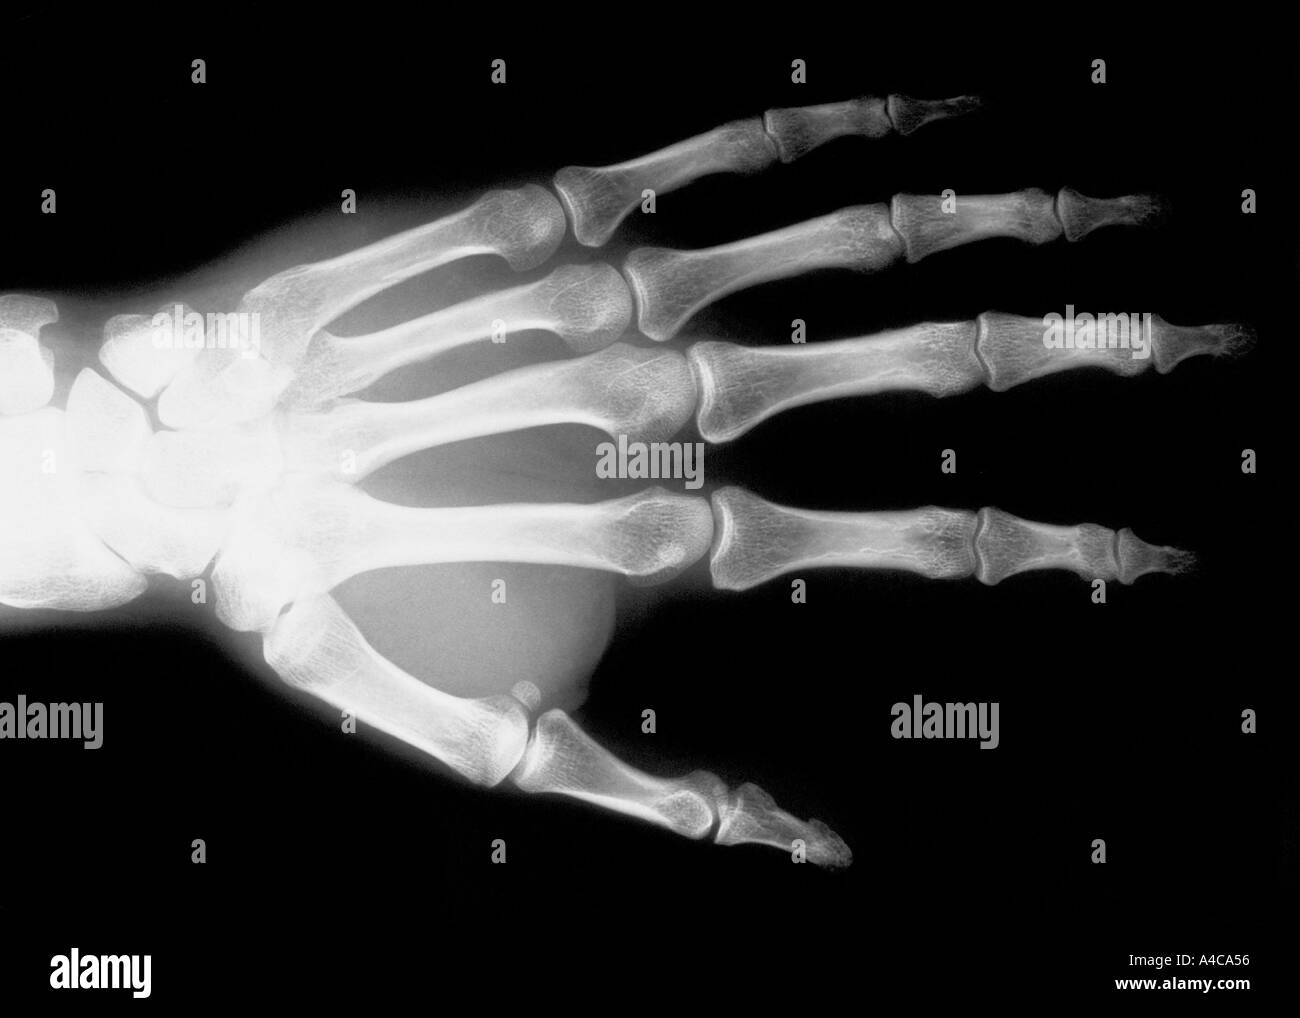 X-ray image of hand - Stock Image